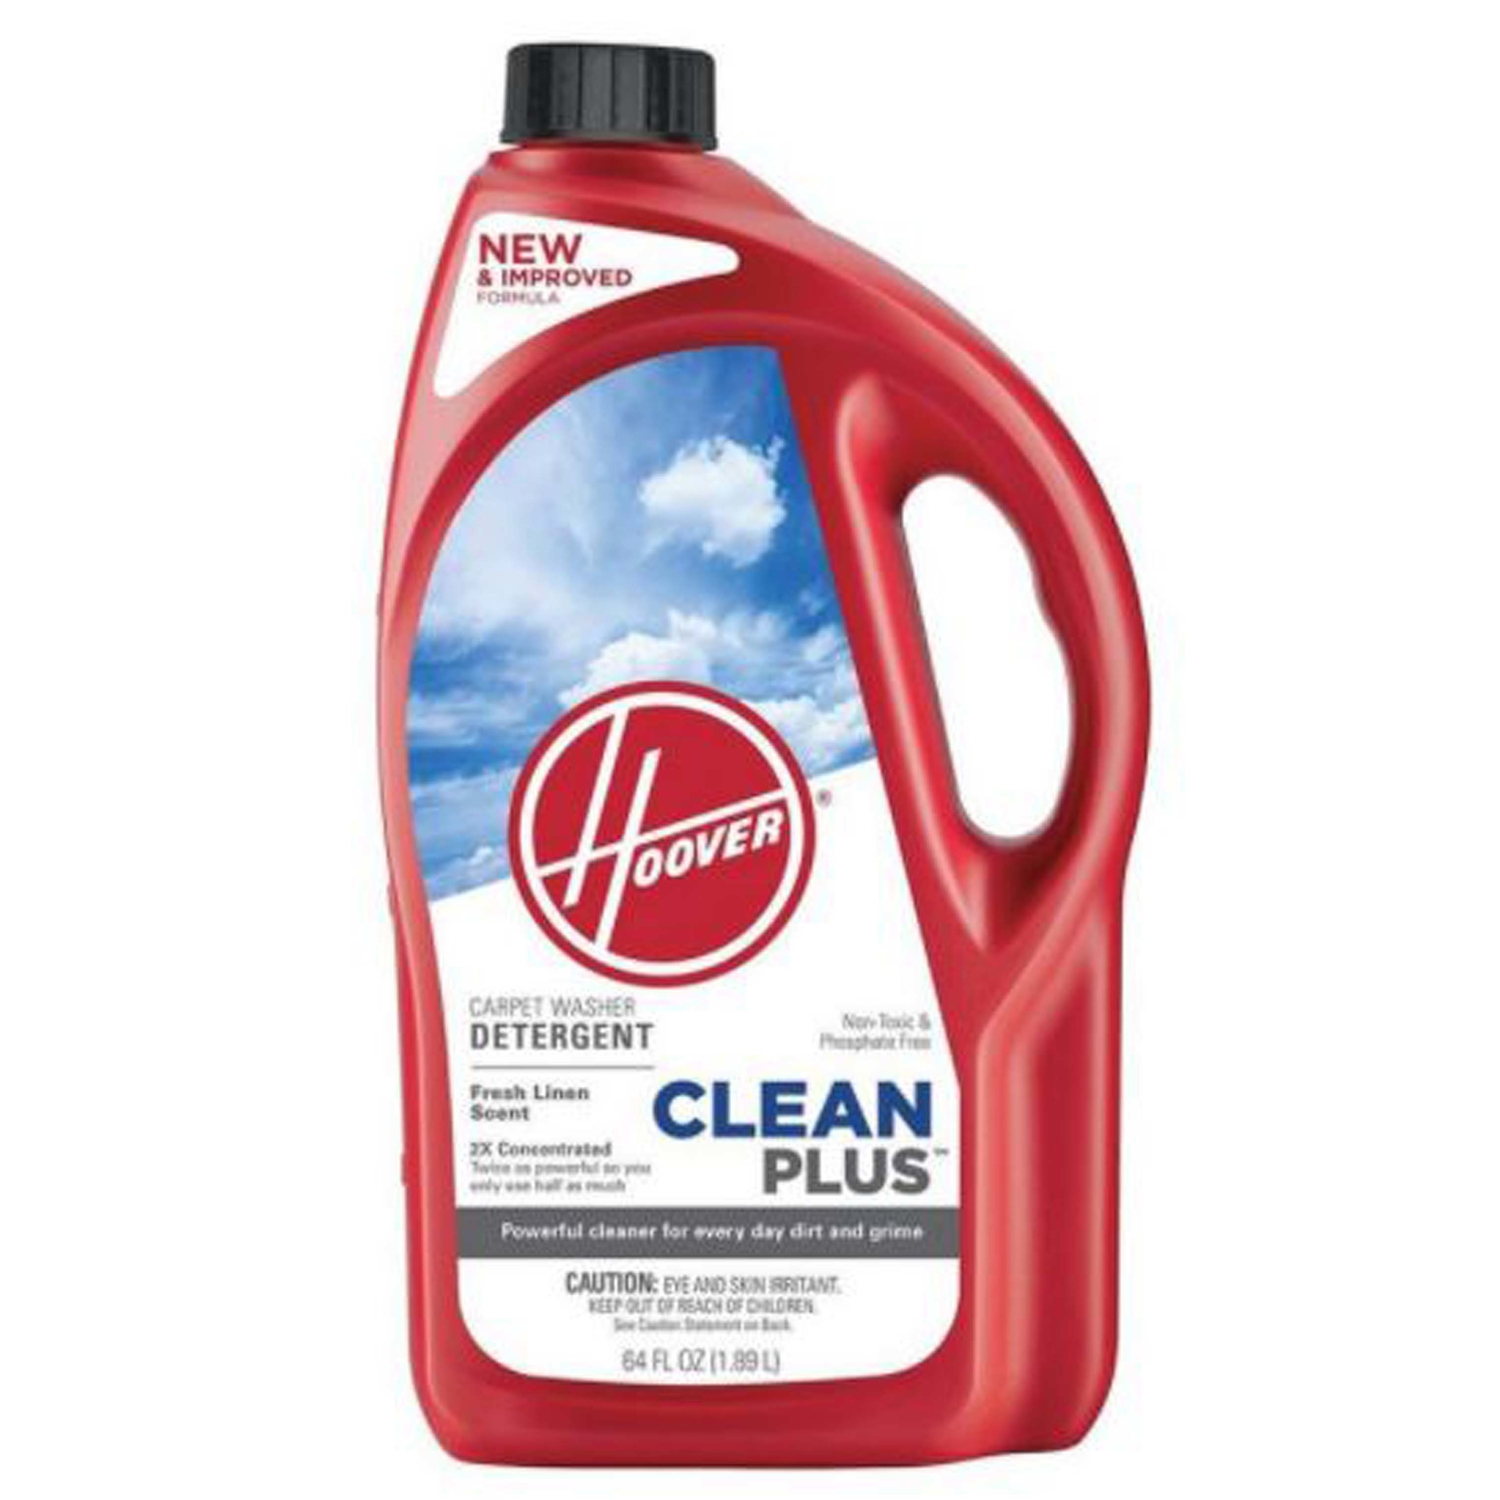 Hoover  Clean Plus  Fresh Linen Scent Carpet Washer Detergent  64 oz. Liquid  Concentrated